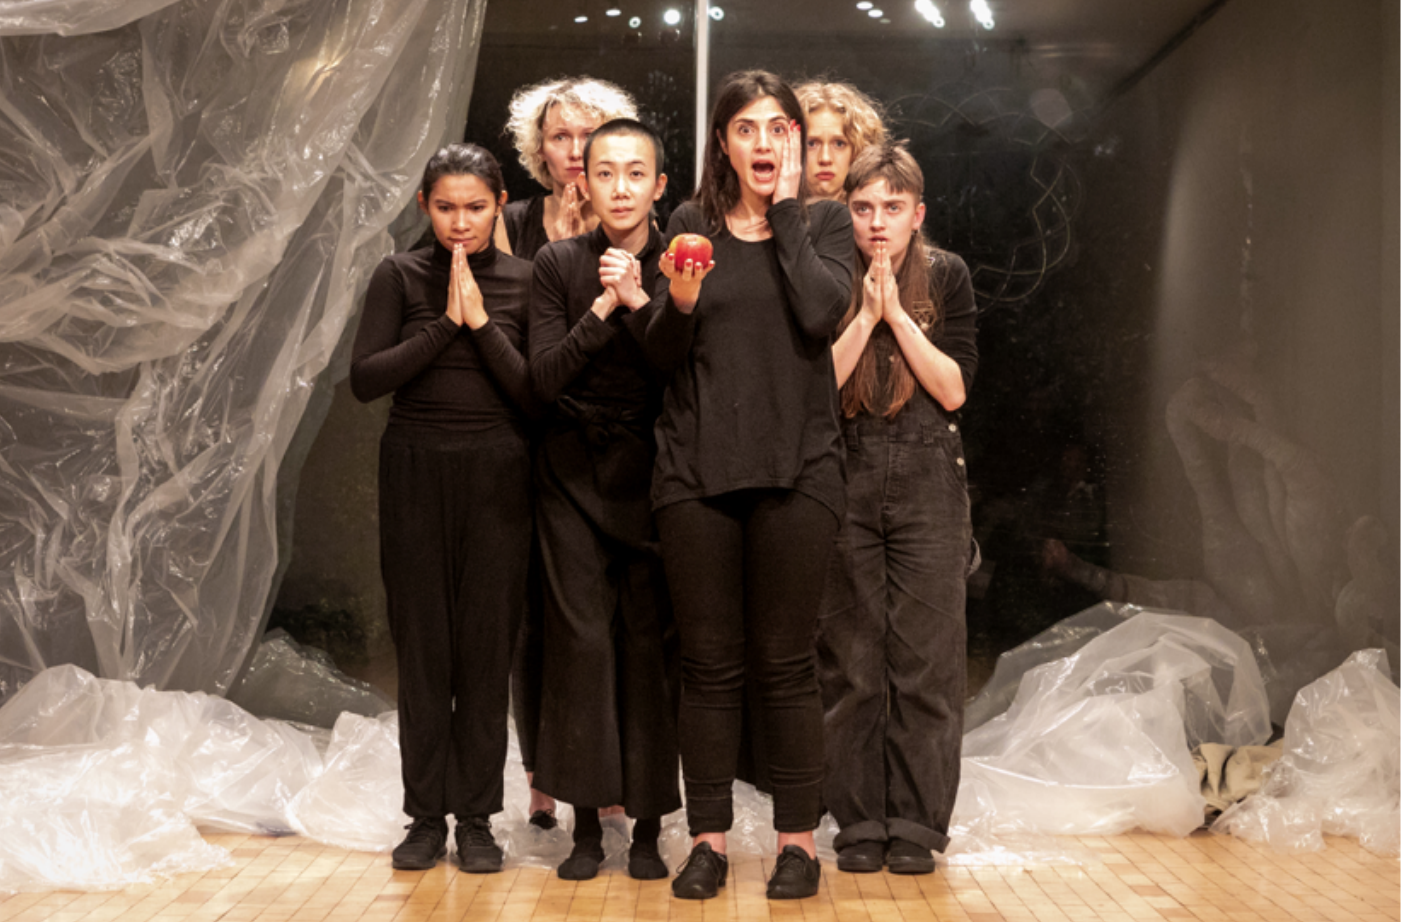 New play explores contemporary womanhood through the myth of Medusa - South Philly Review